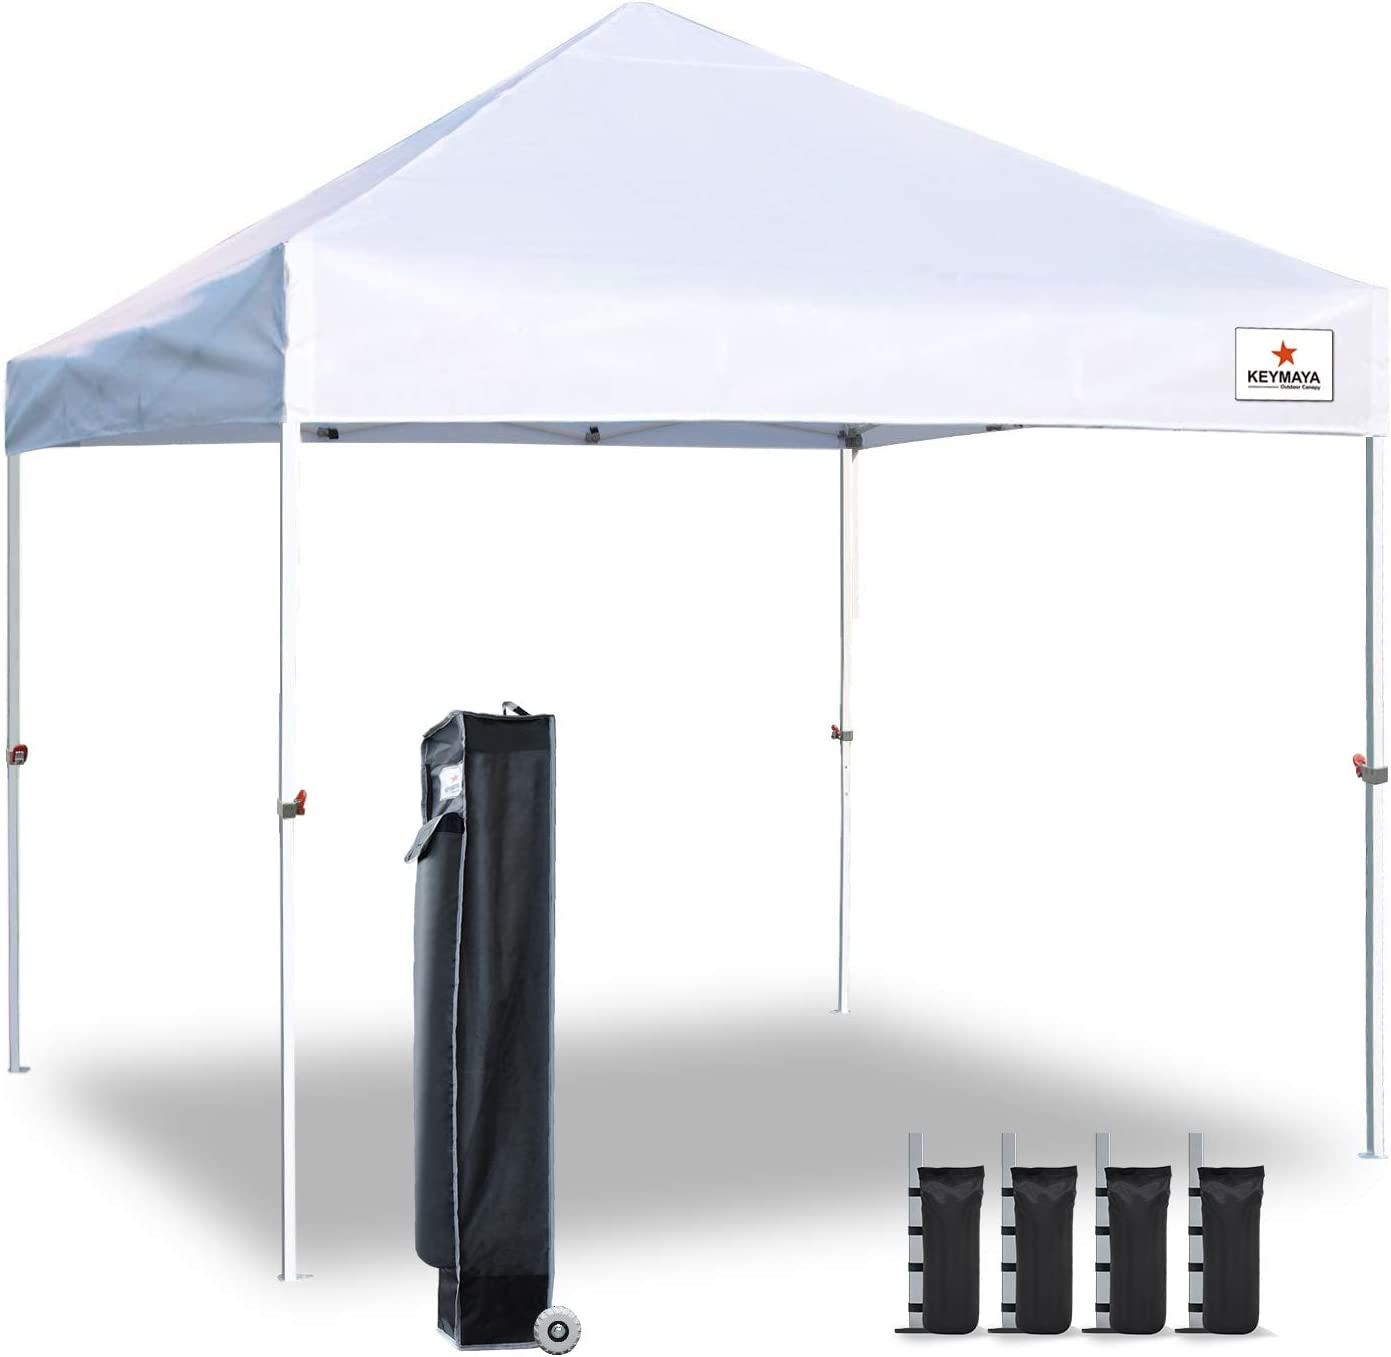 Keymaya 10x10 Ez Pop Up Canopy Tent Commercial Instant Shelter Canopies with Heavy Duty Roller Bag,Bonus 4 Canopy Sand Bags (White)